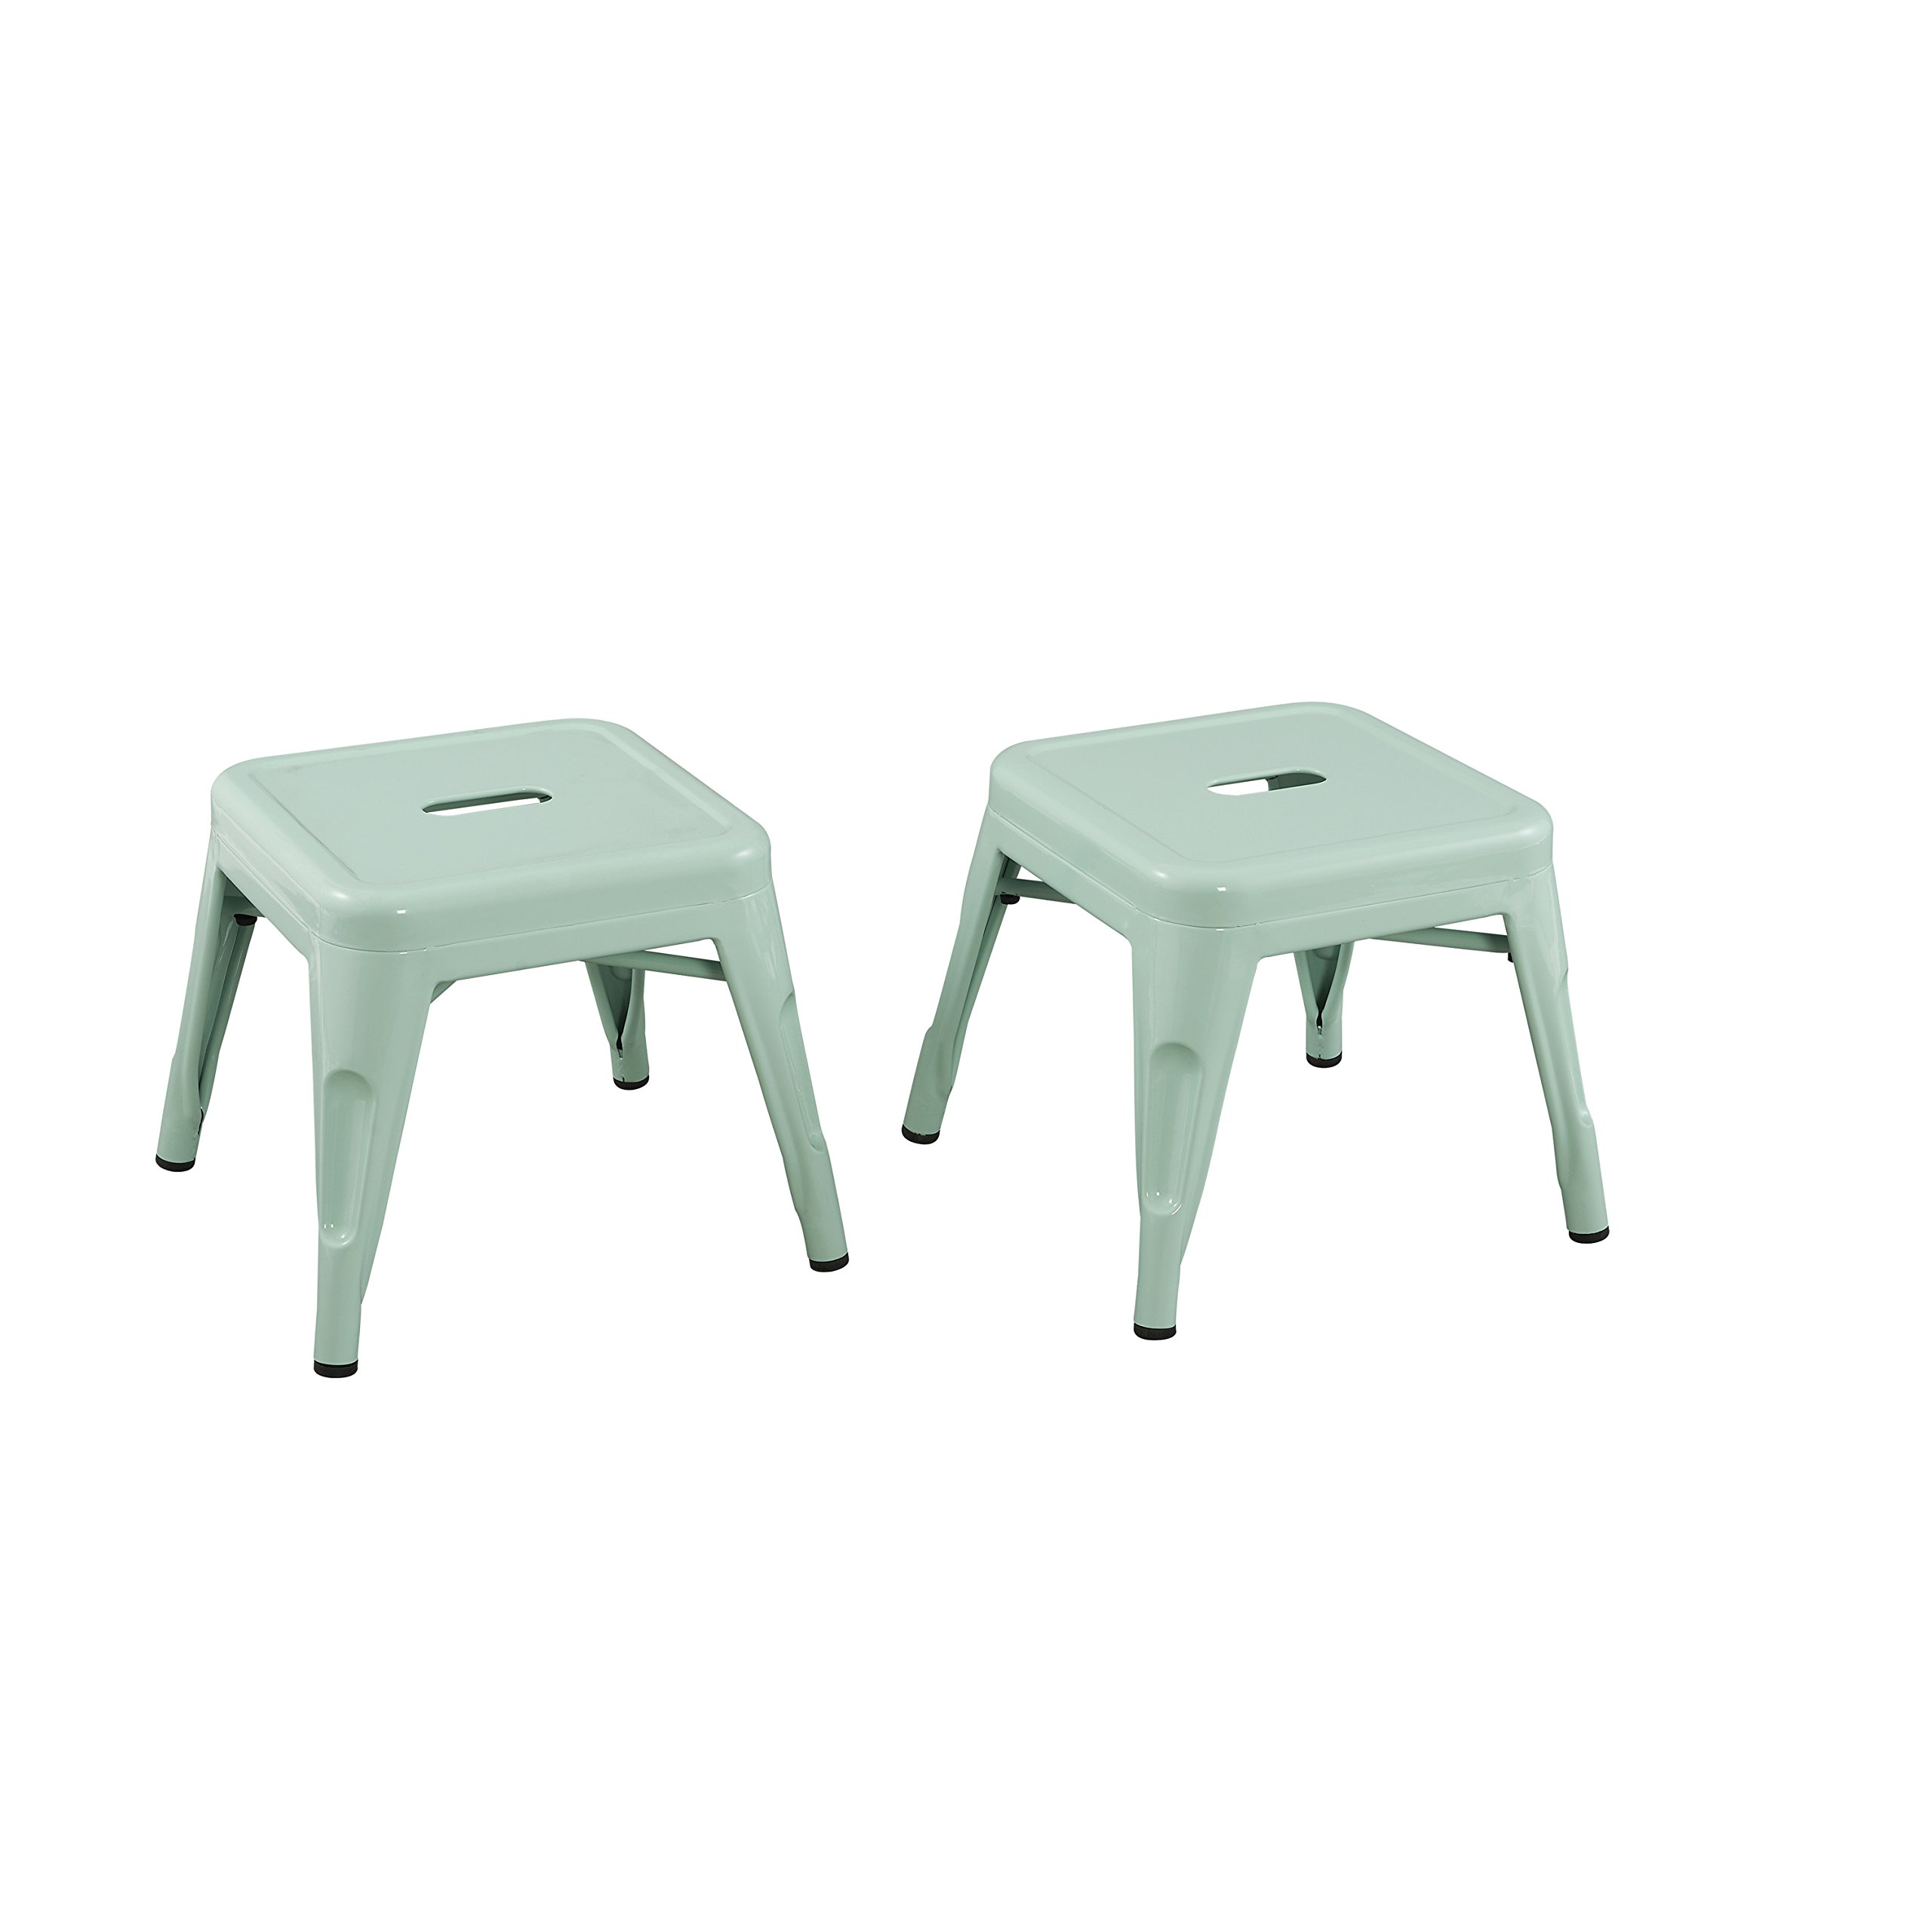 Reservation Seating Kids Steel Stool, Mint Green, One Size